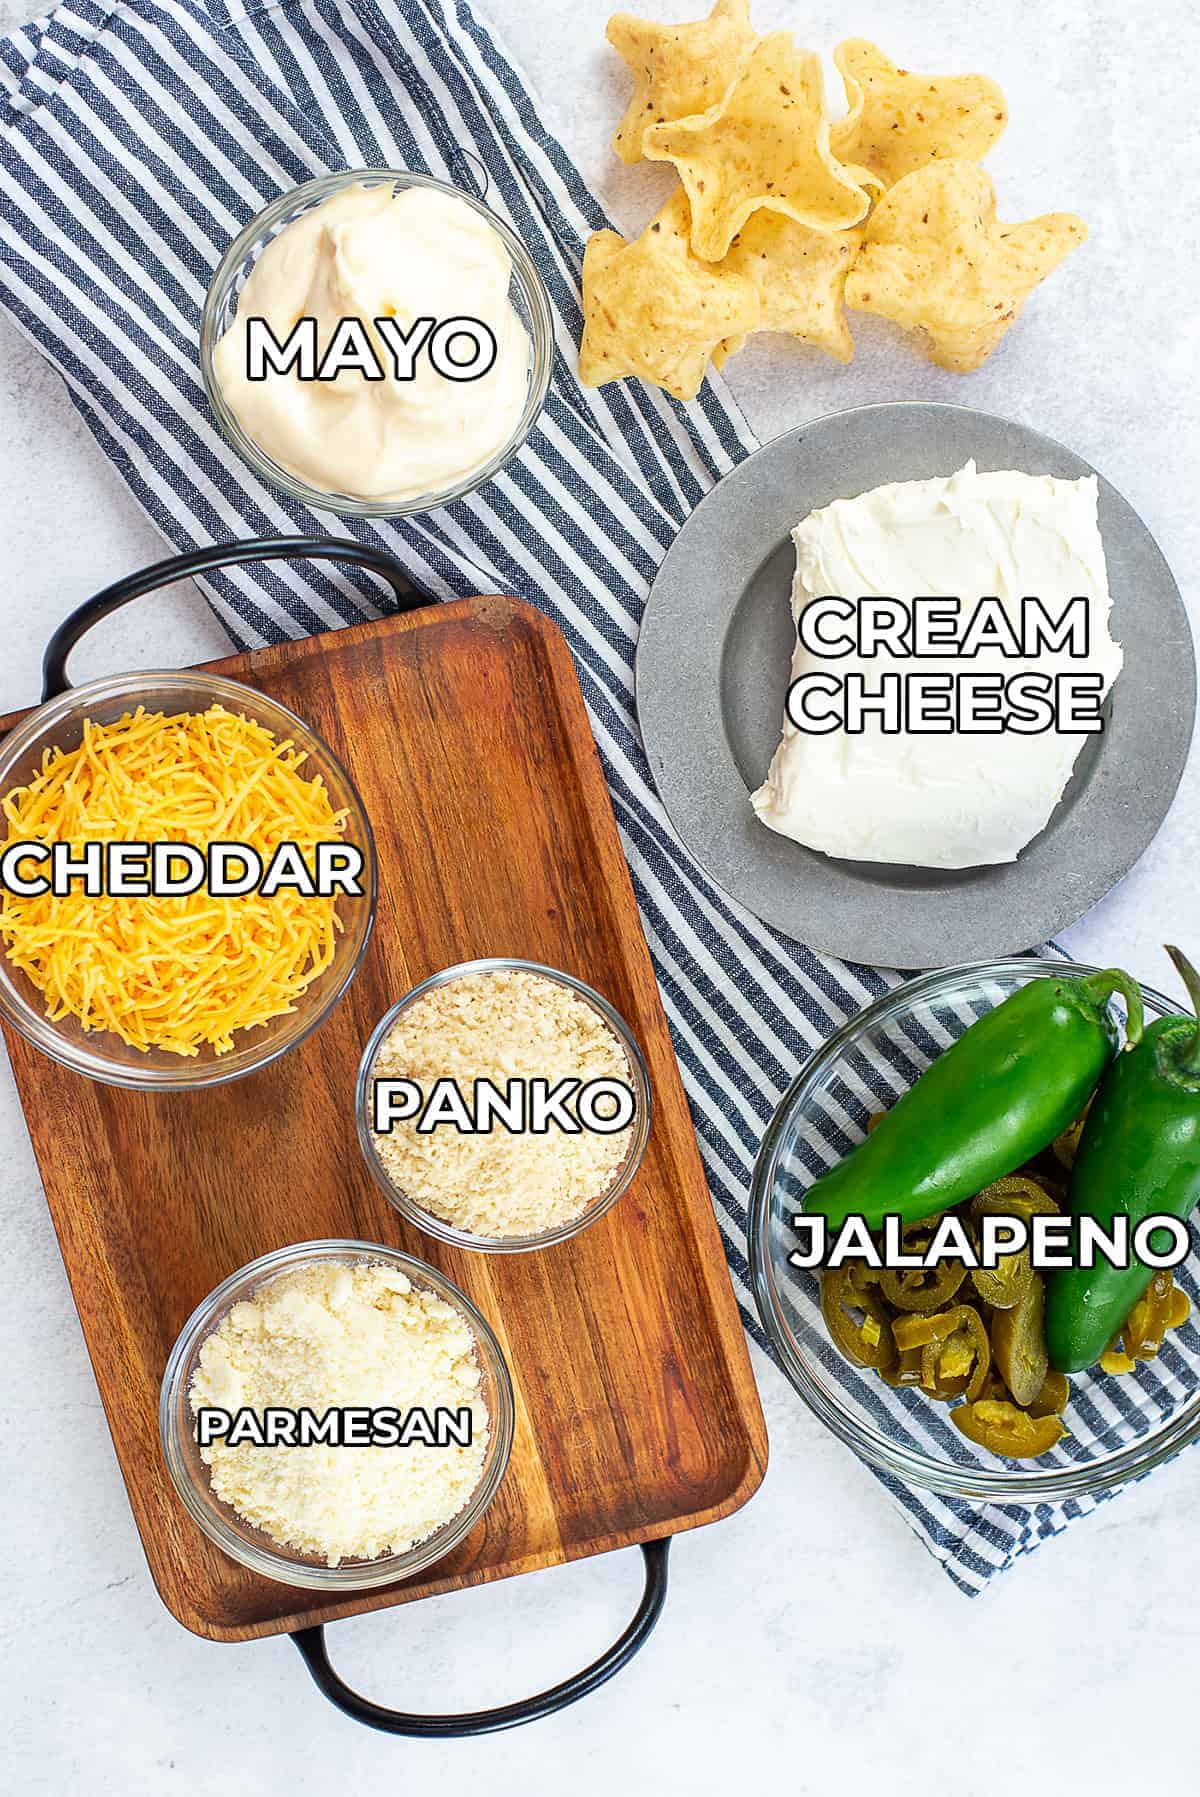 ingredients for jalapeno cream cheese dip.